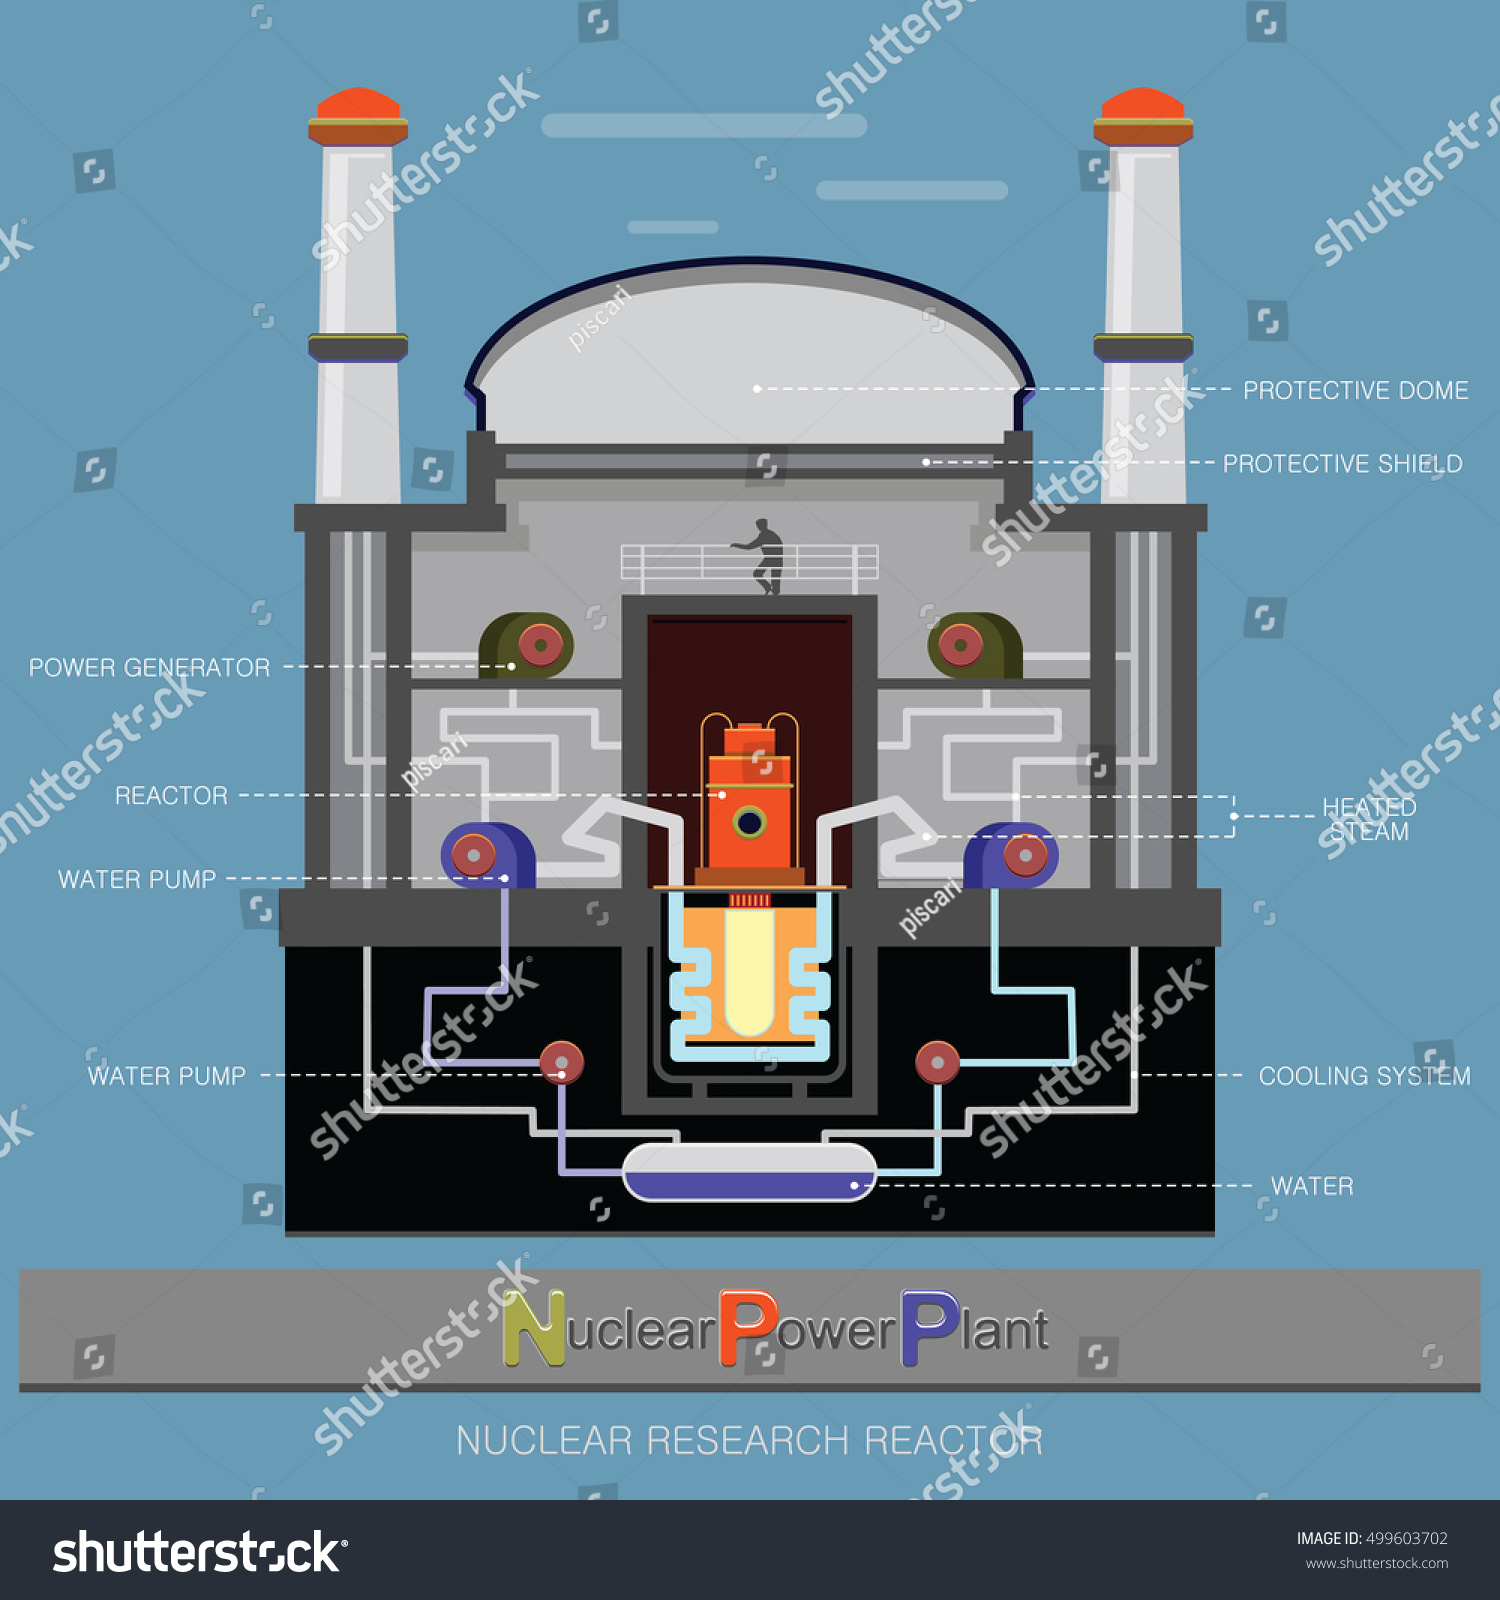 Nuclear Power Plant Infographic Industrial Electric Stock Vector With Diagram Generation Concept